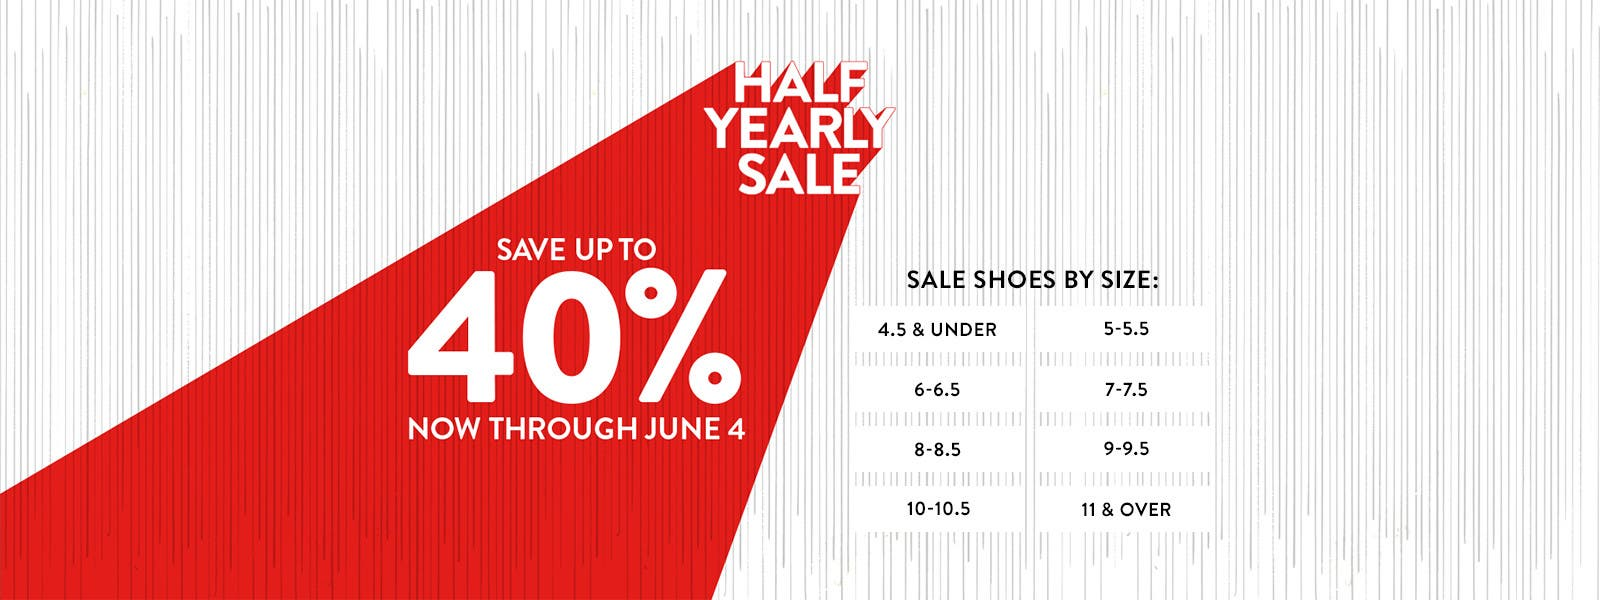 Half-Yearly Sale. Save up to 40% through June 4. Shop women's sale shoes by size.